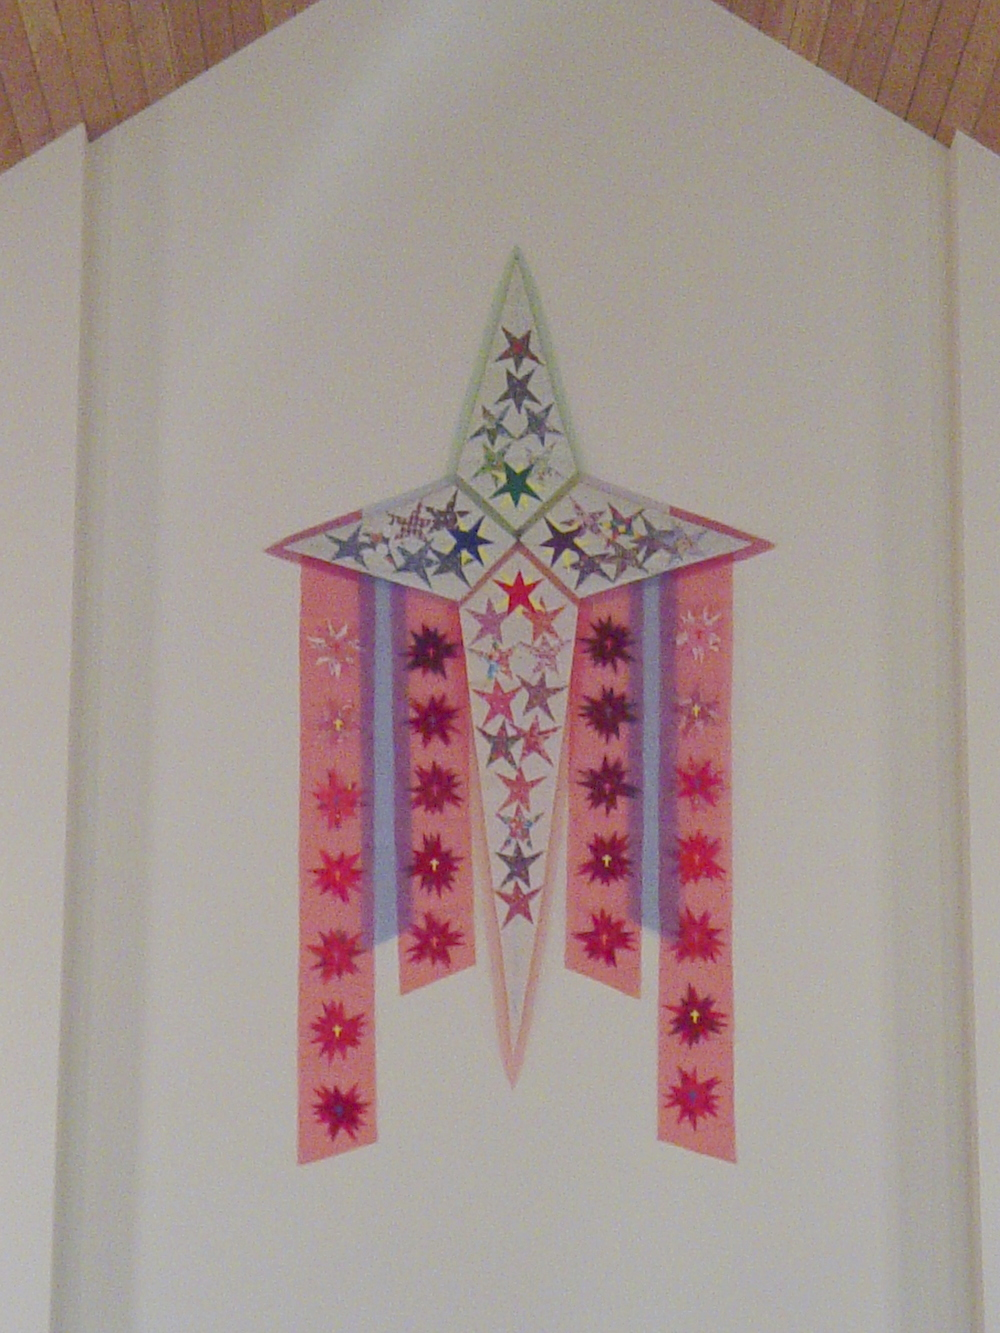 Star-Cross with inset community-stars, 9 ft.